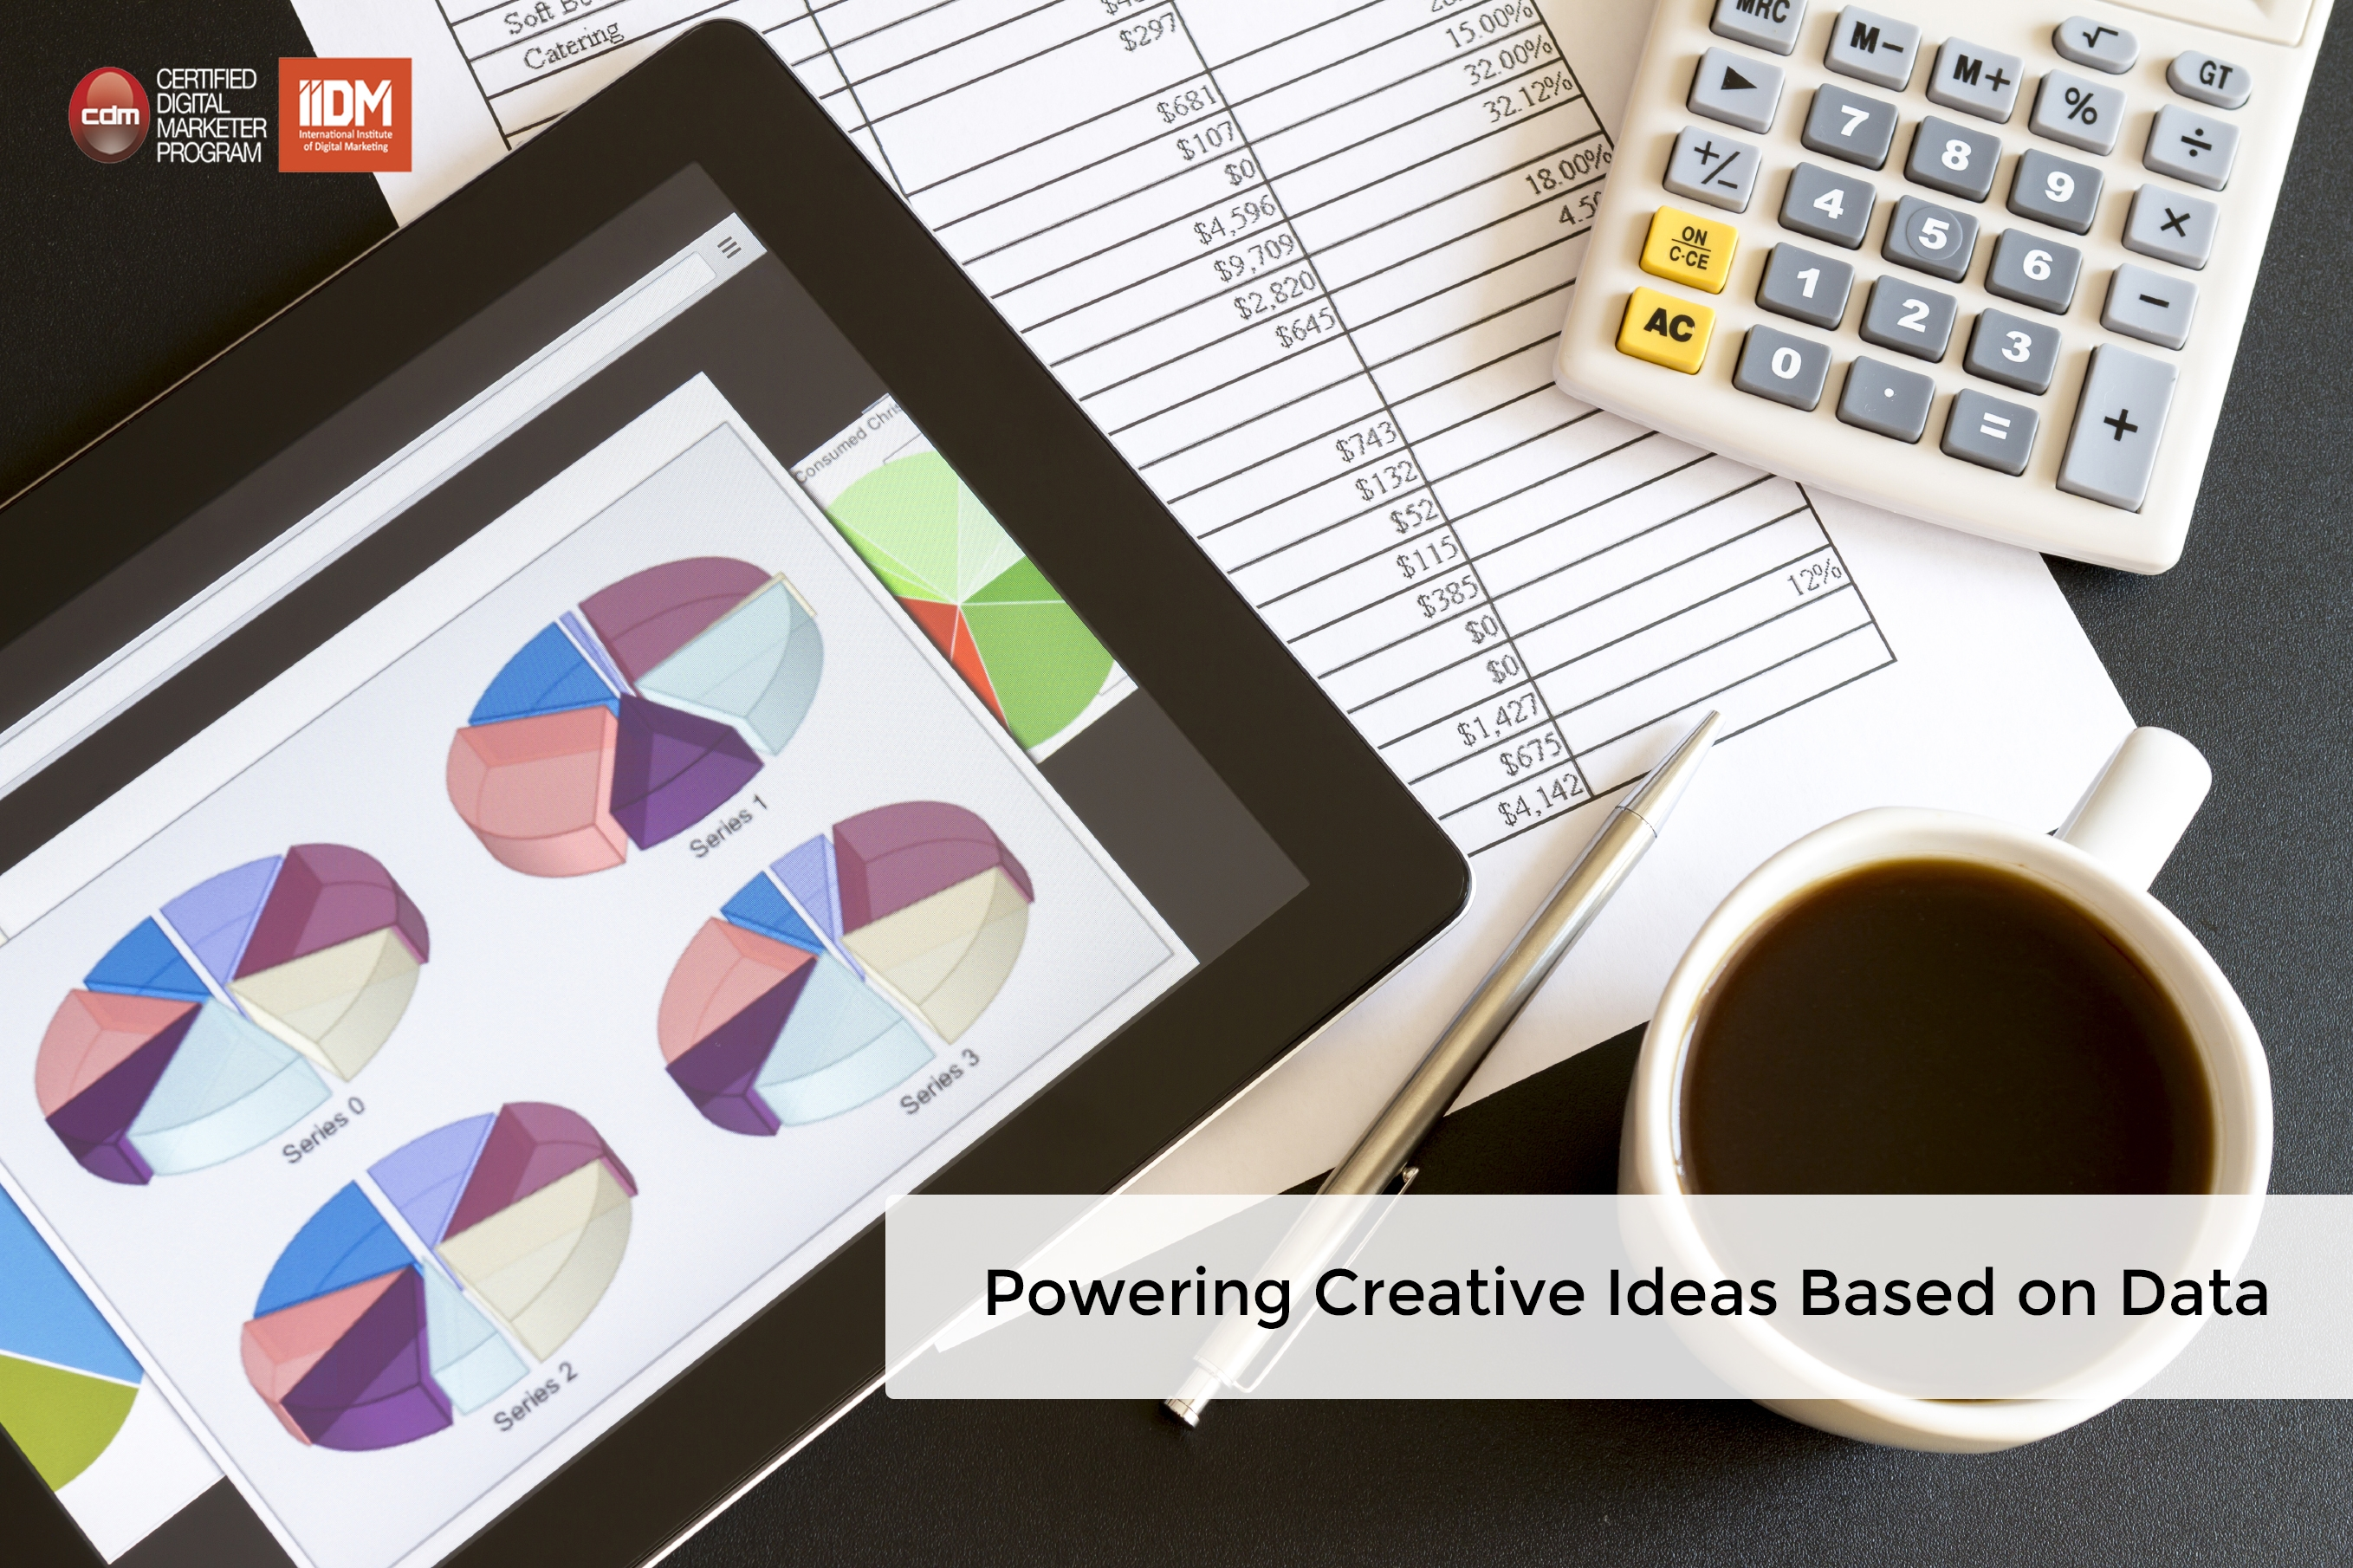 Powering creative ideas based on data